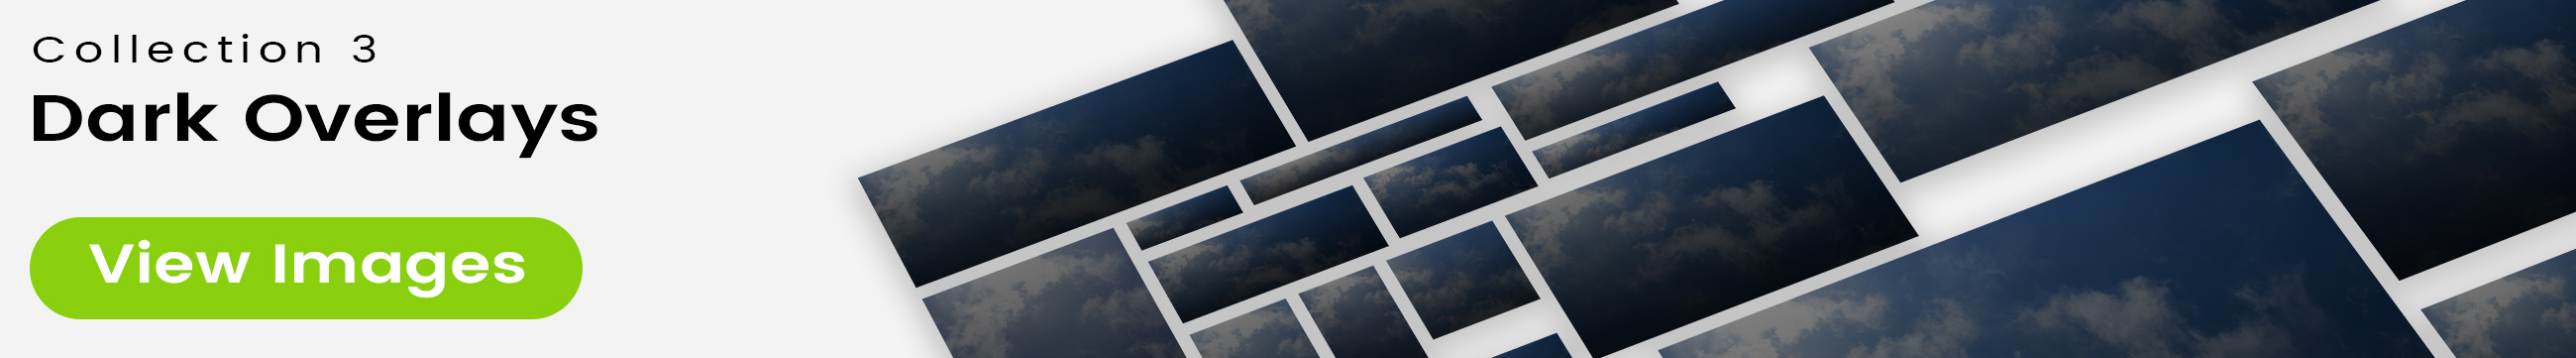 See 25 bonus images included with clouds stock image 9484. Collection 3 of 4 features a dark overlay design.